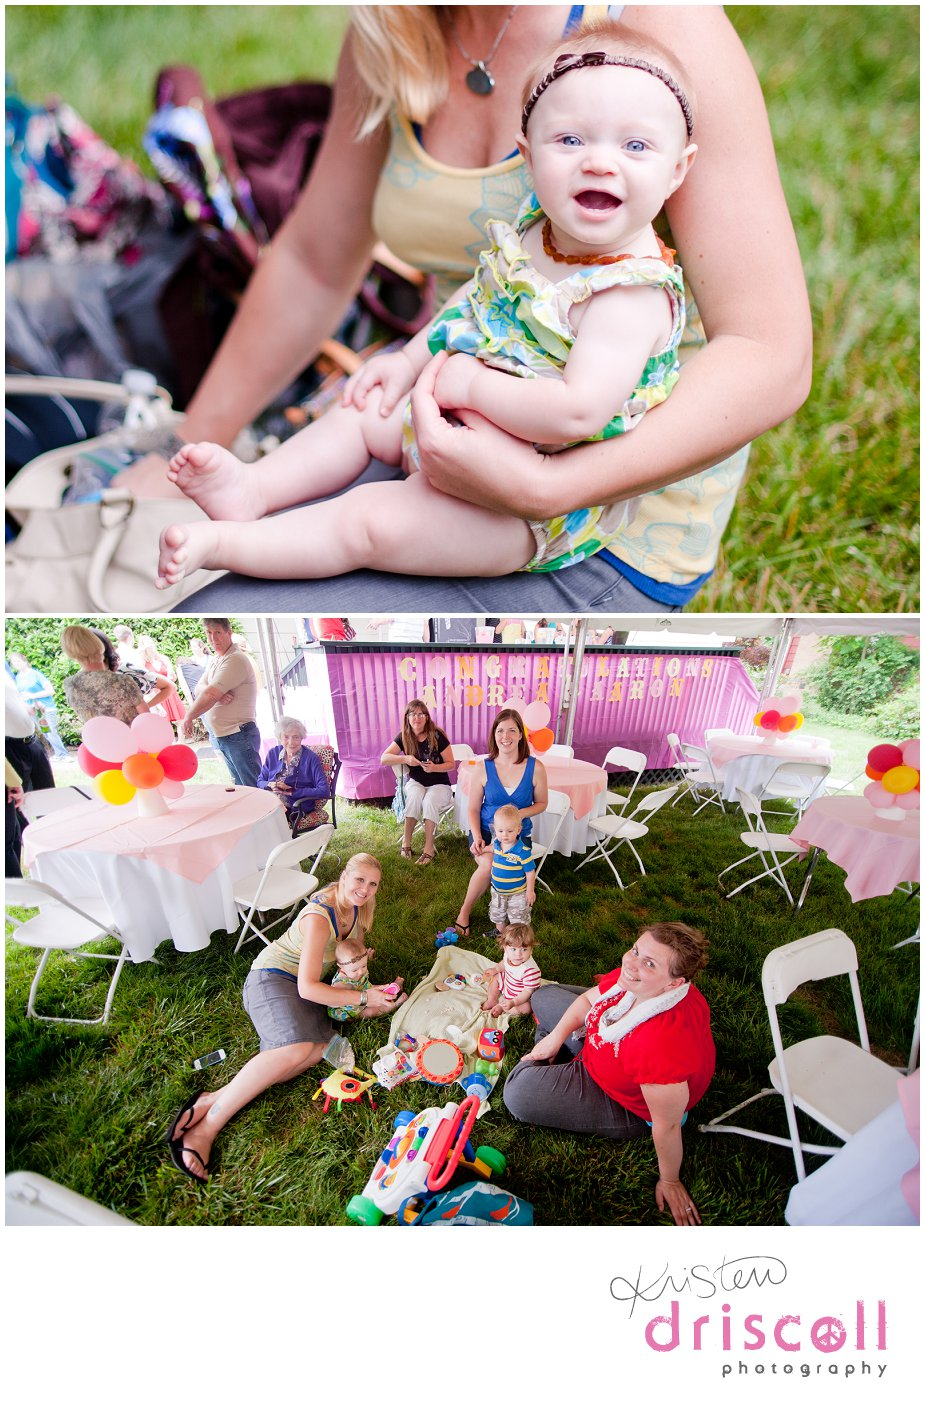 kristen-driscoll-photography-baby-shower-nj_2012_017